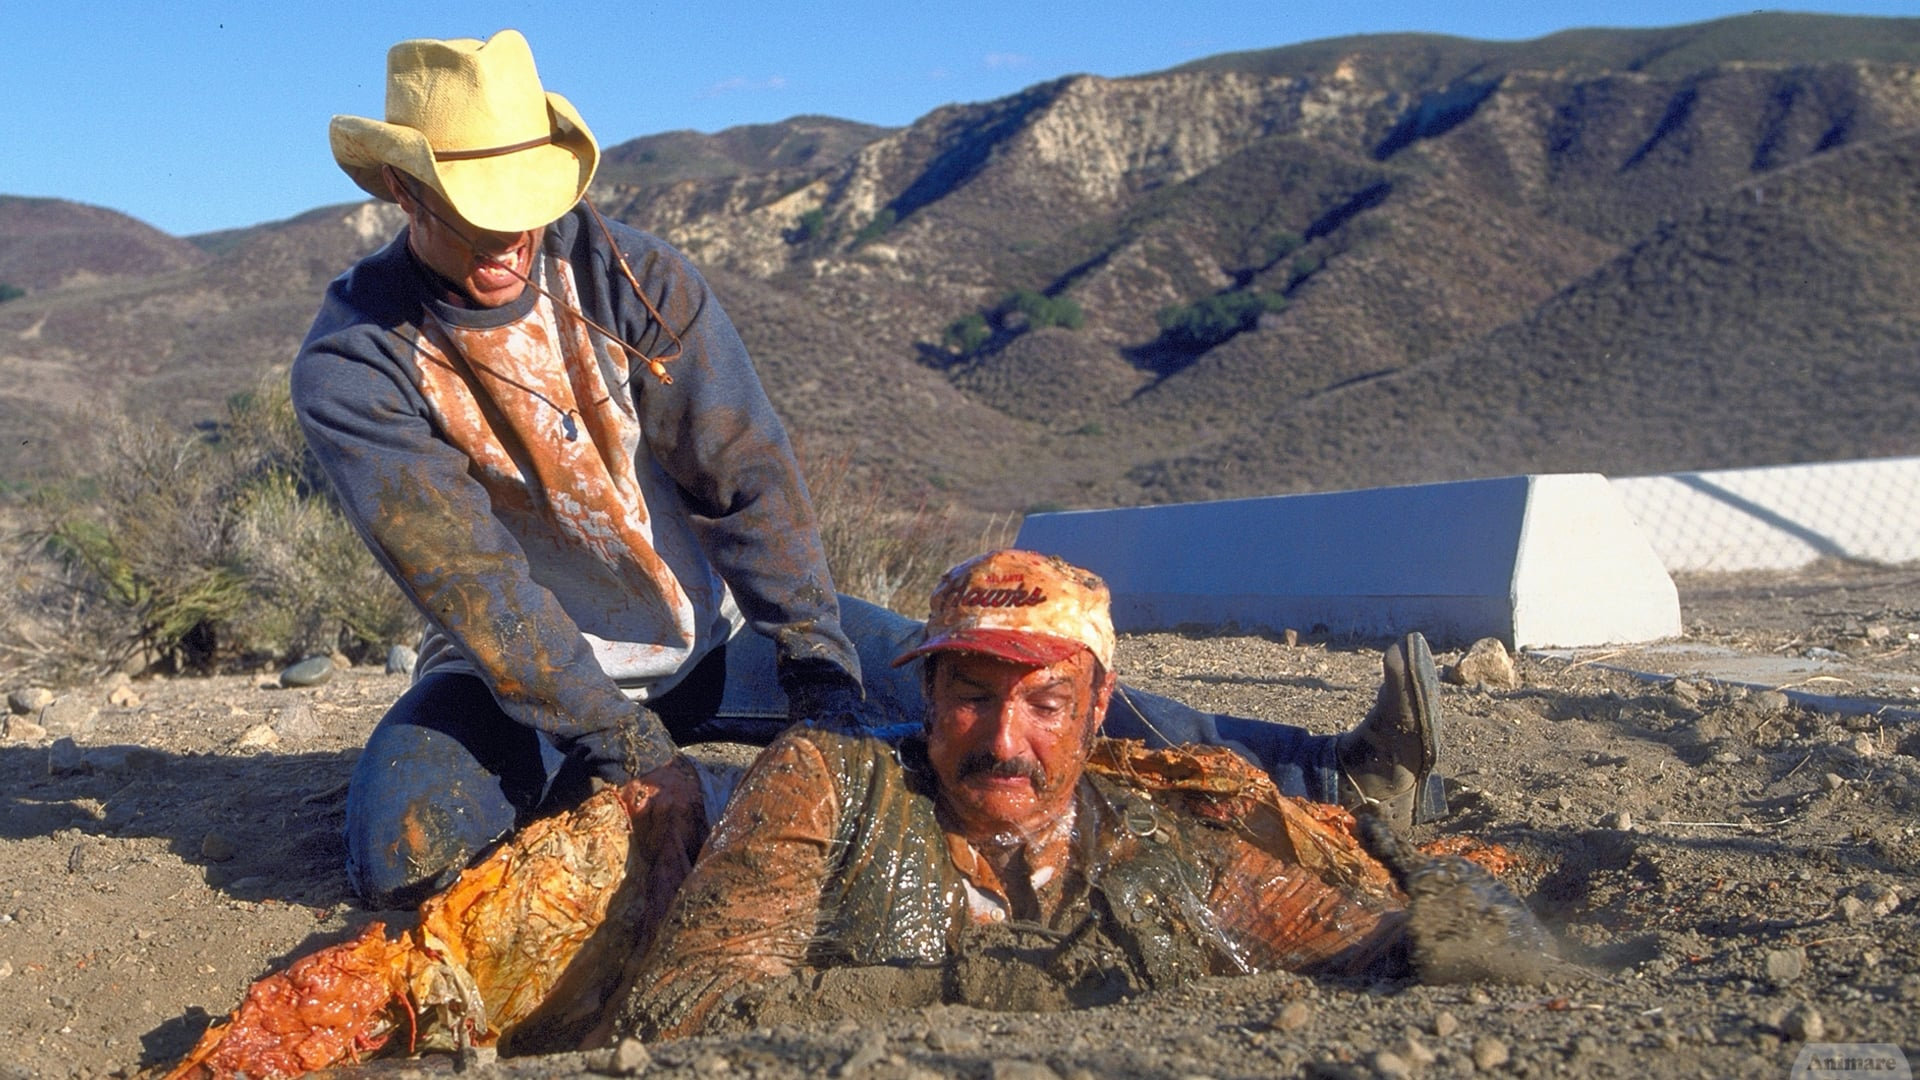 Shawn Christian tries to rescue Michael Gross from being swallowed by a Graboid in Tremors 3: Back to Perfection (2001)